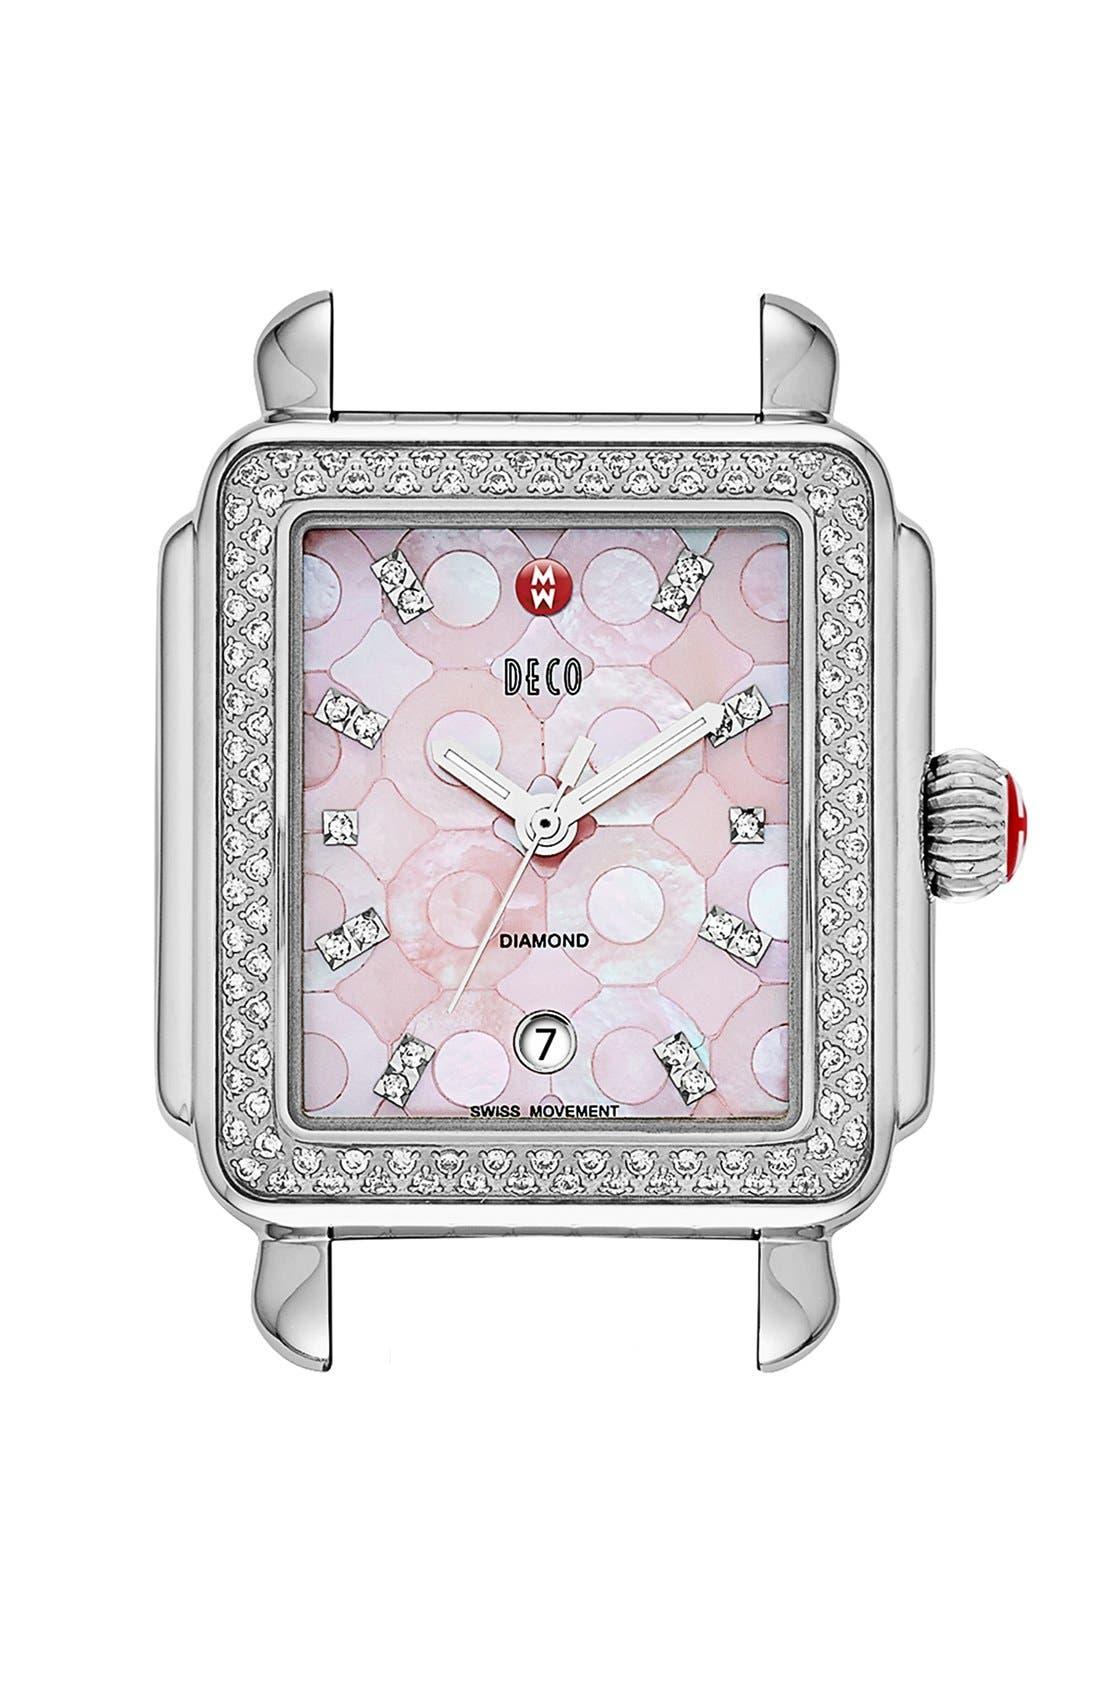 Alternate Image 1 Selected - MICHELE 'Deco Diamond' Pink Mosaic Dial Watch Case, 33mm x 35mm